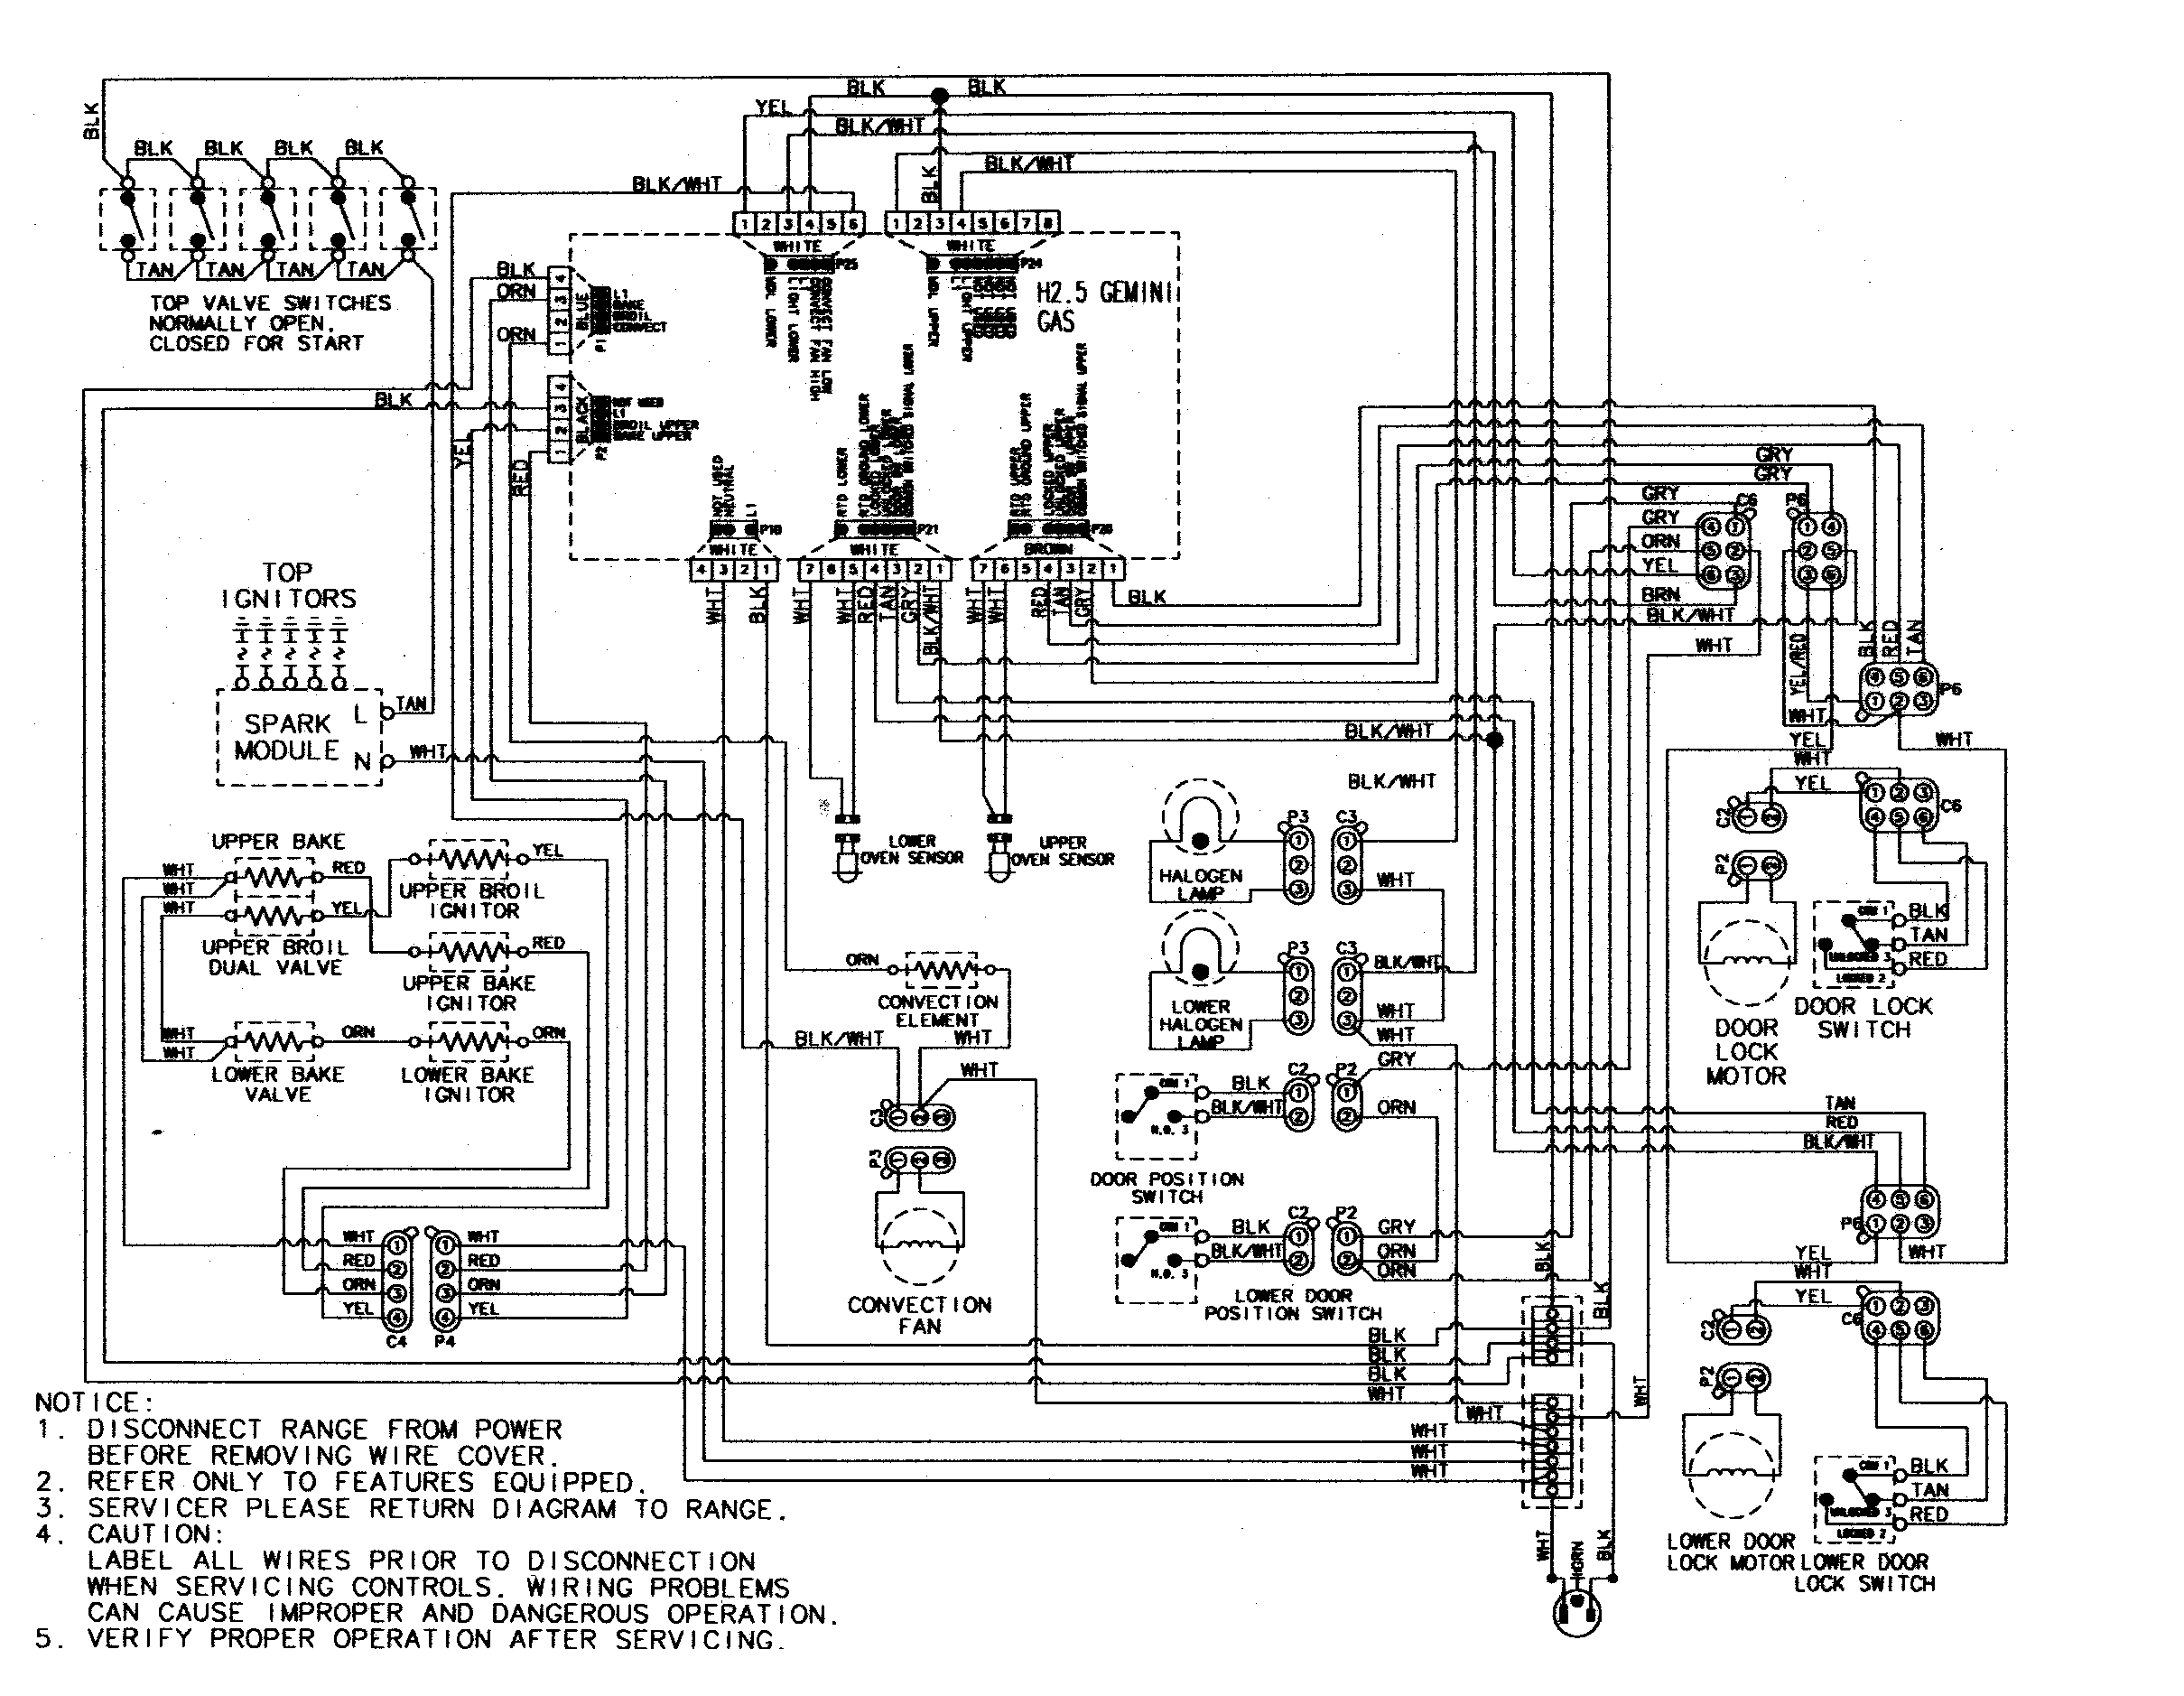 Wiring diagram ge side by side refrigerators the wiring diagram on ge wiring diagram for dishwasher GE Profile Range Wiring Diagram Wiring Diagram for Stove